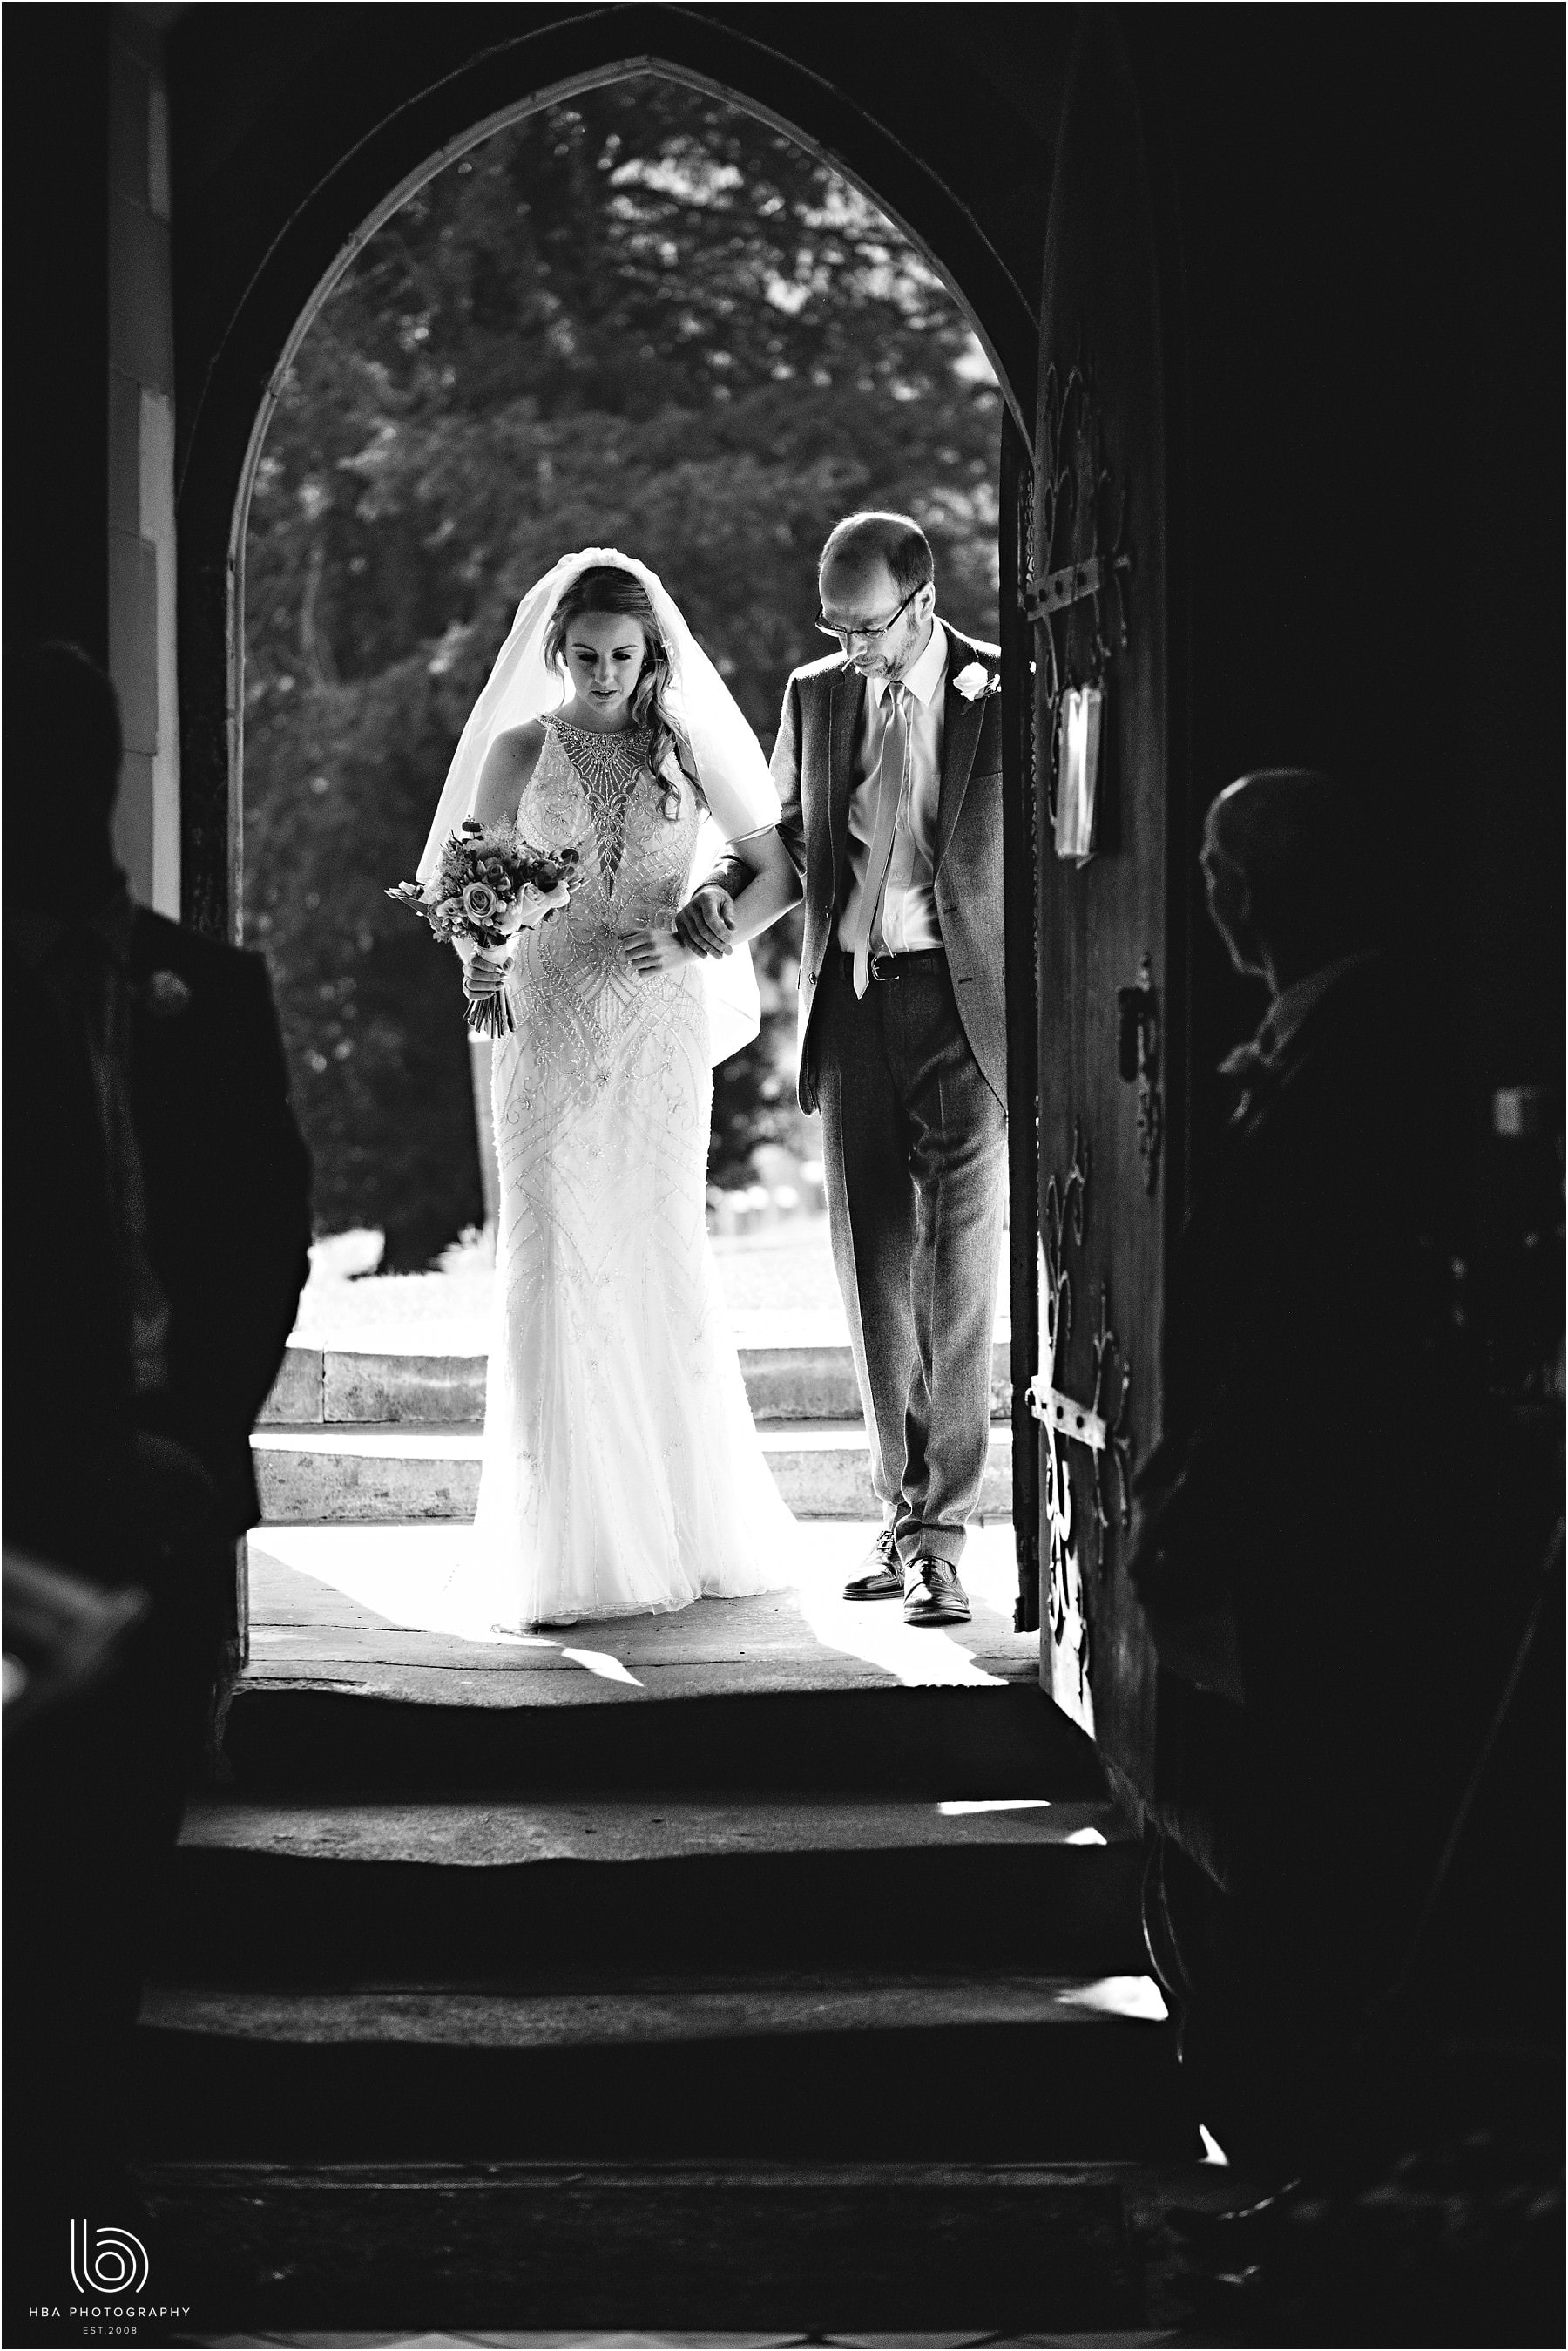 the bride and her dad walking into the church